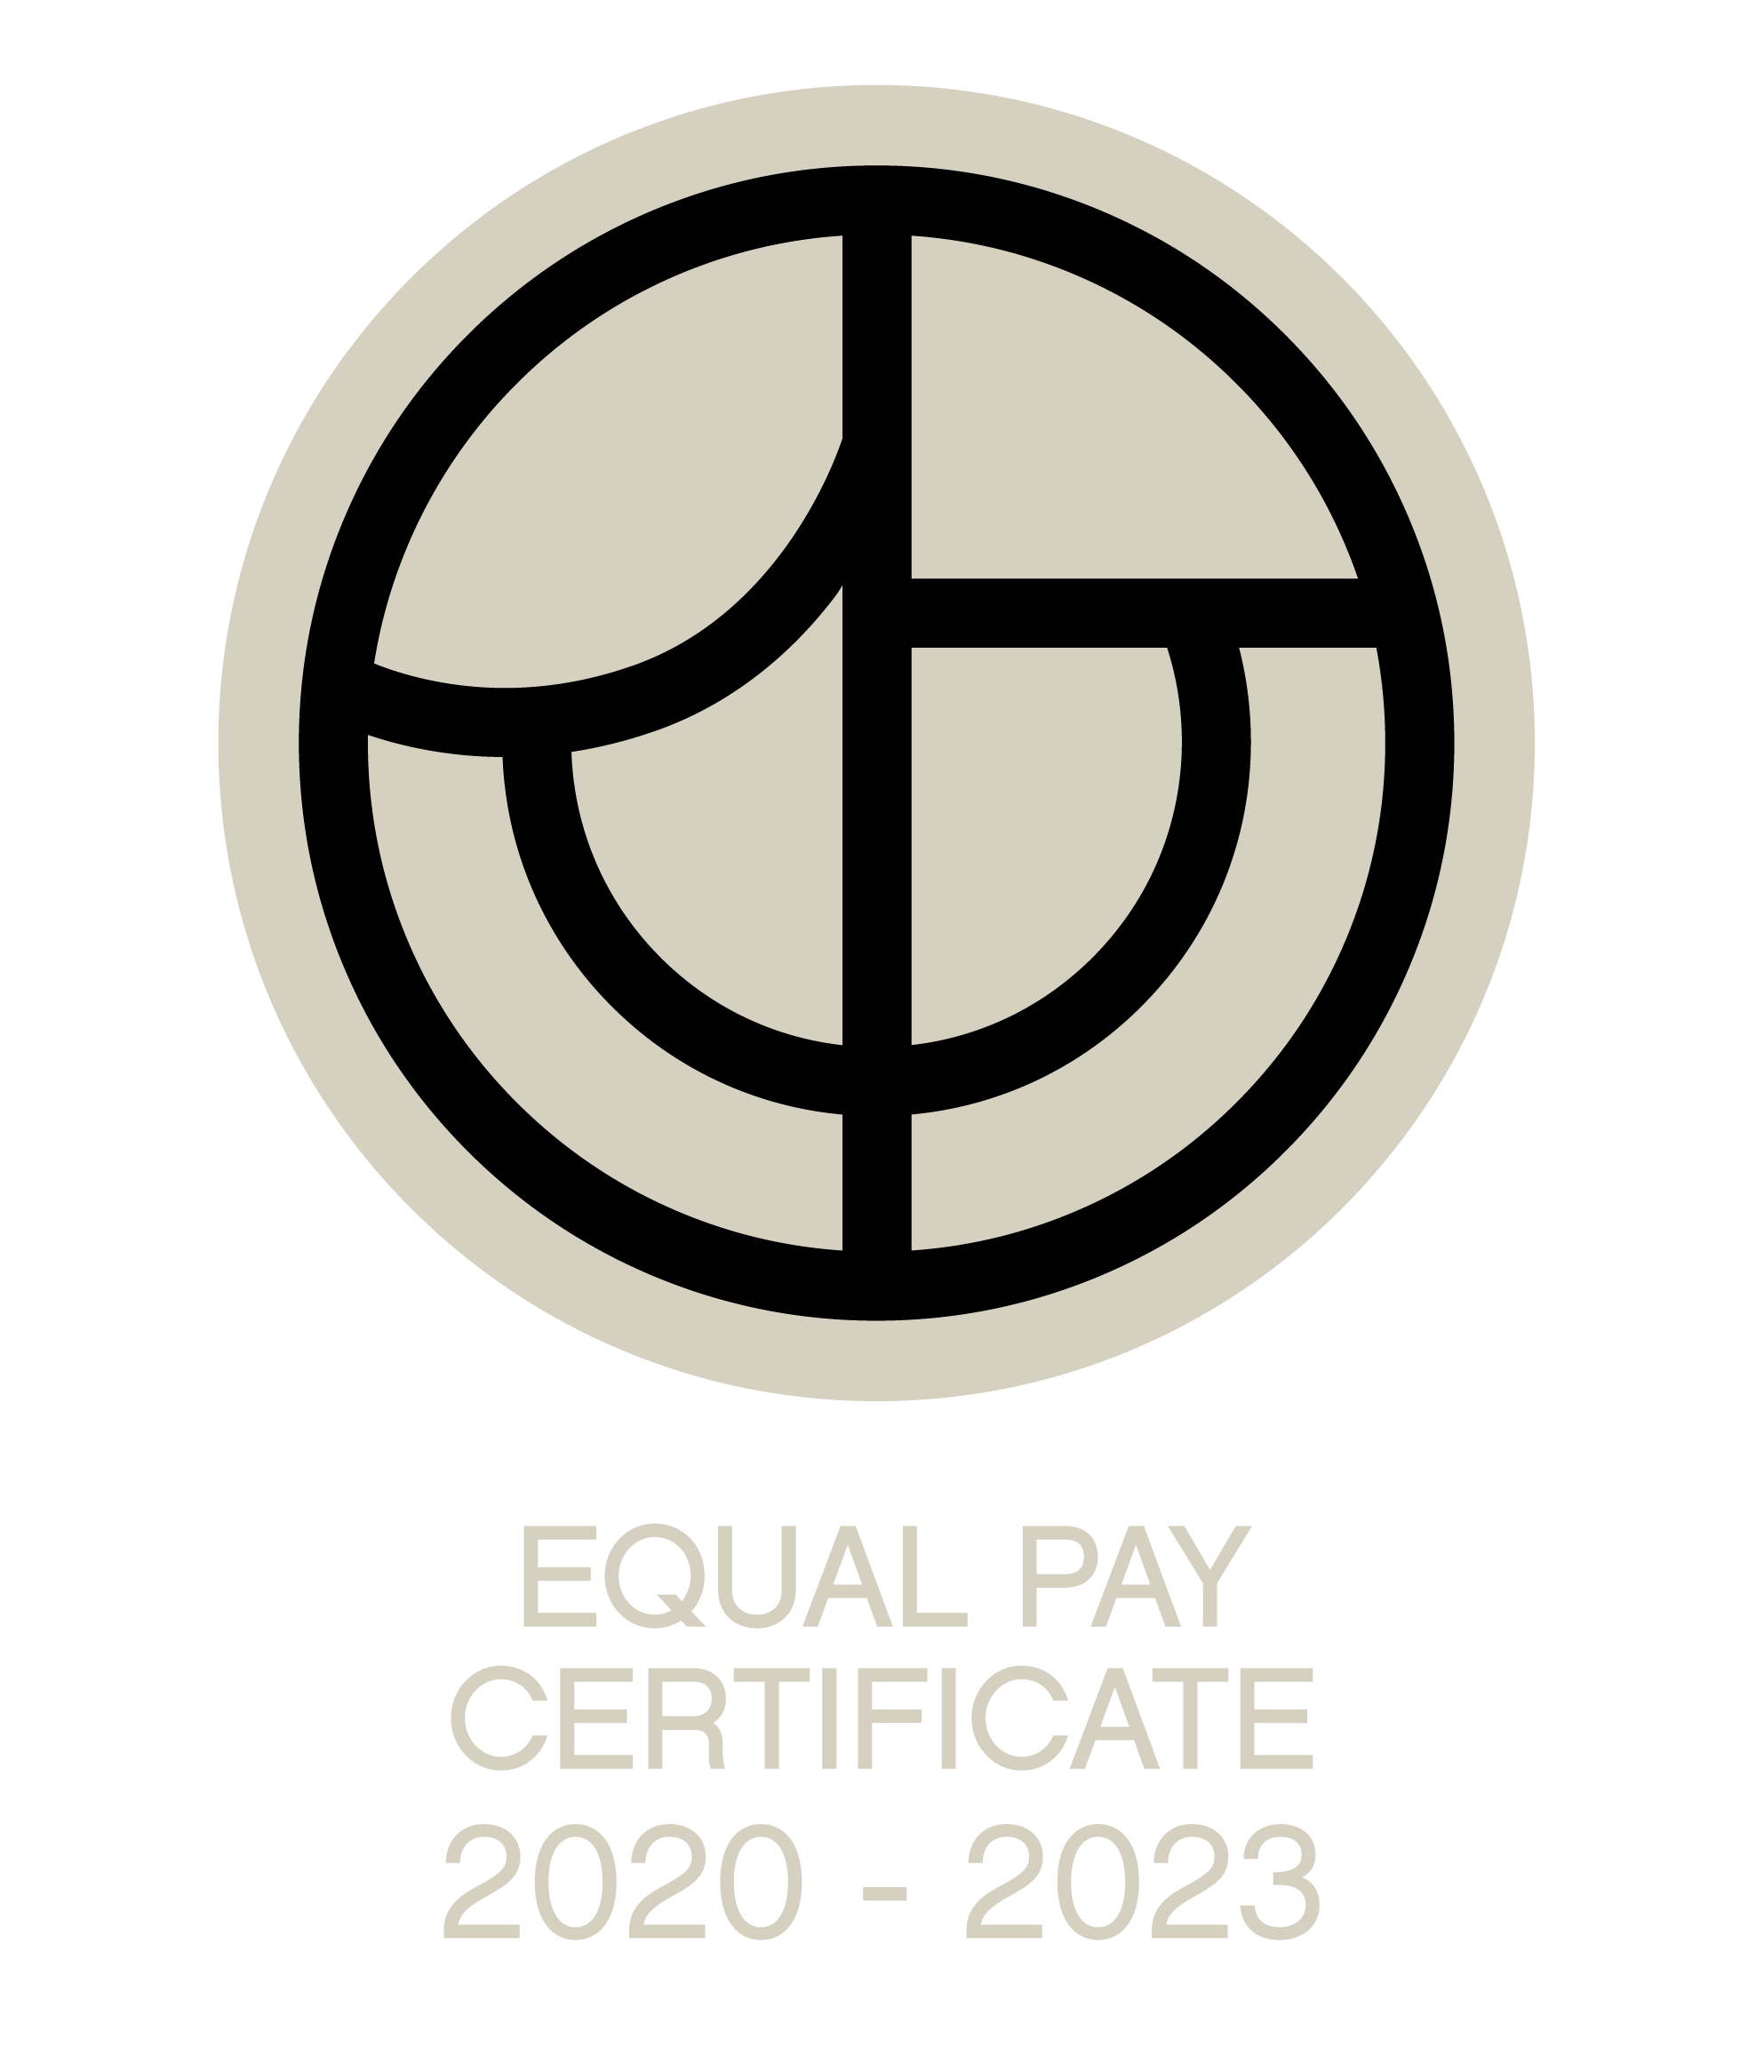 EqualPay_2020_2023_secondaryUse_on_dark_background.png